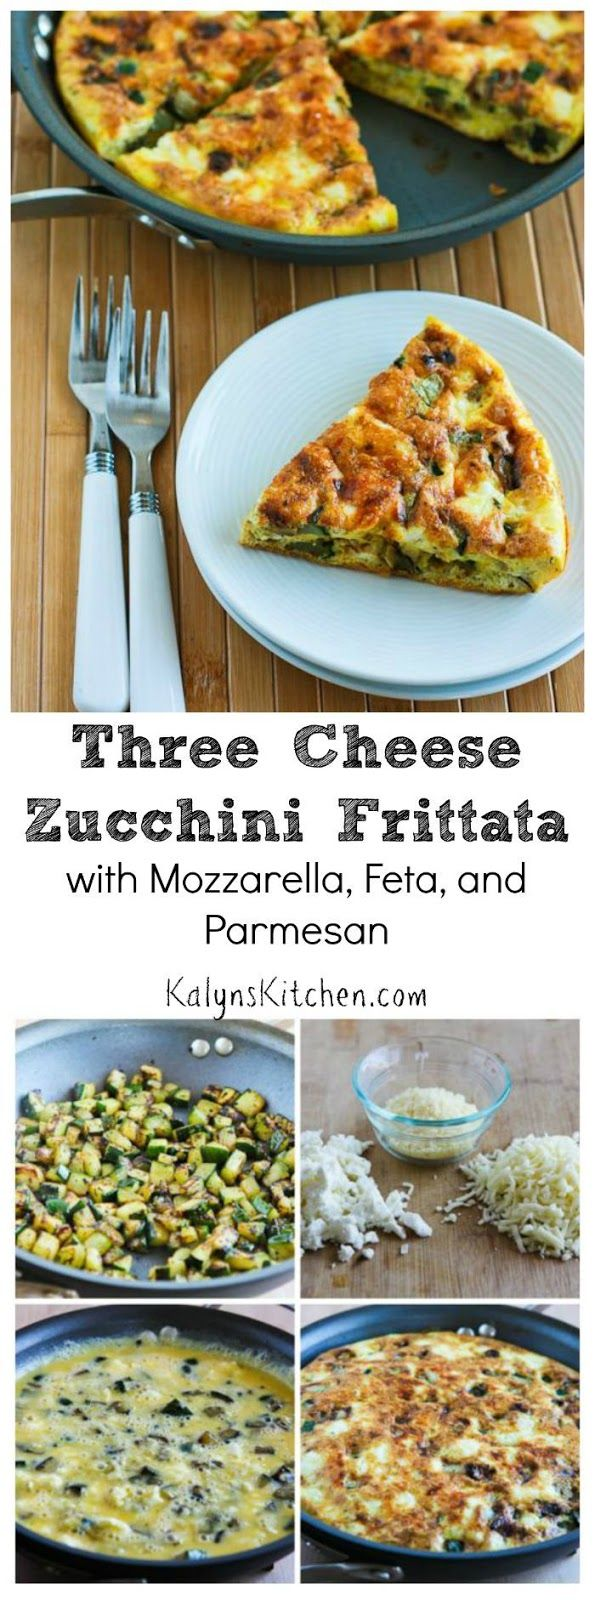 When you're trying to think of a way to use zucchini, this Three Cheese Zucchini Frittata with Mozzarella, Feta, and Parmesan is delicious for a healthy meal any time of day. And this tasty zucchini frittata is  Low-Carb, Gluten-Free, Meatless, and South Beach Diet friendly. [from KalynsKitchen.com]: